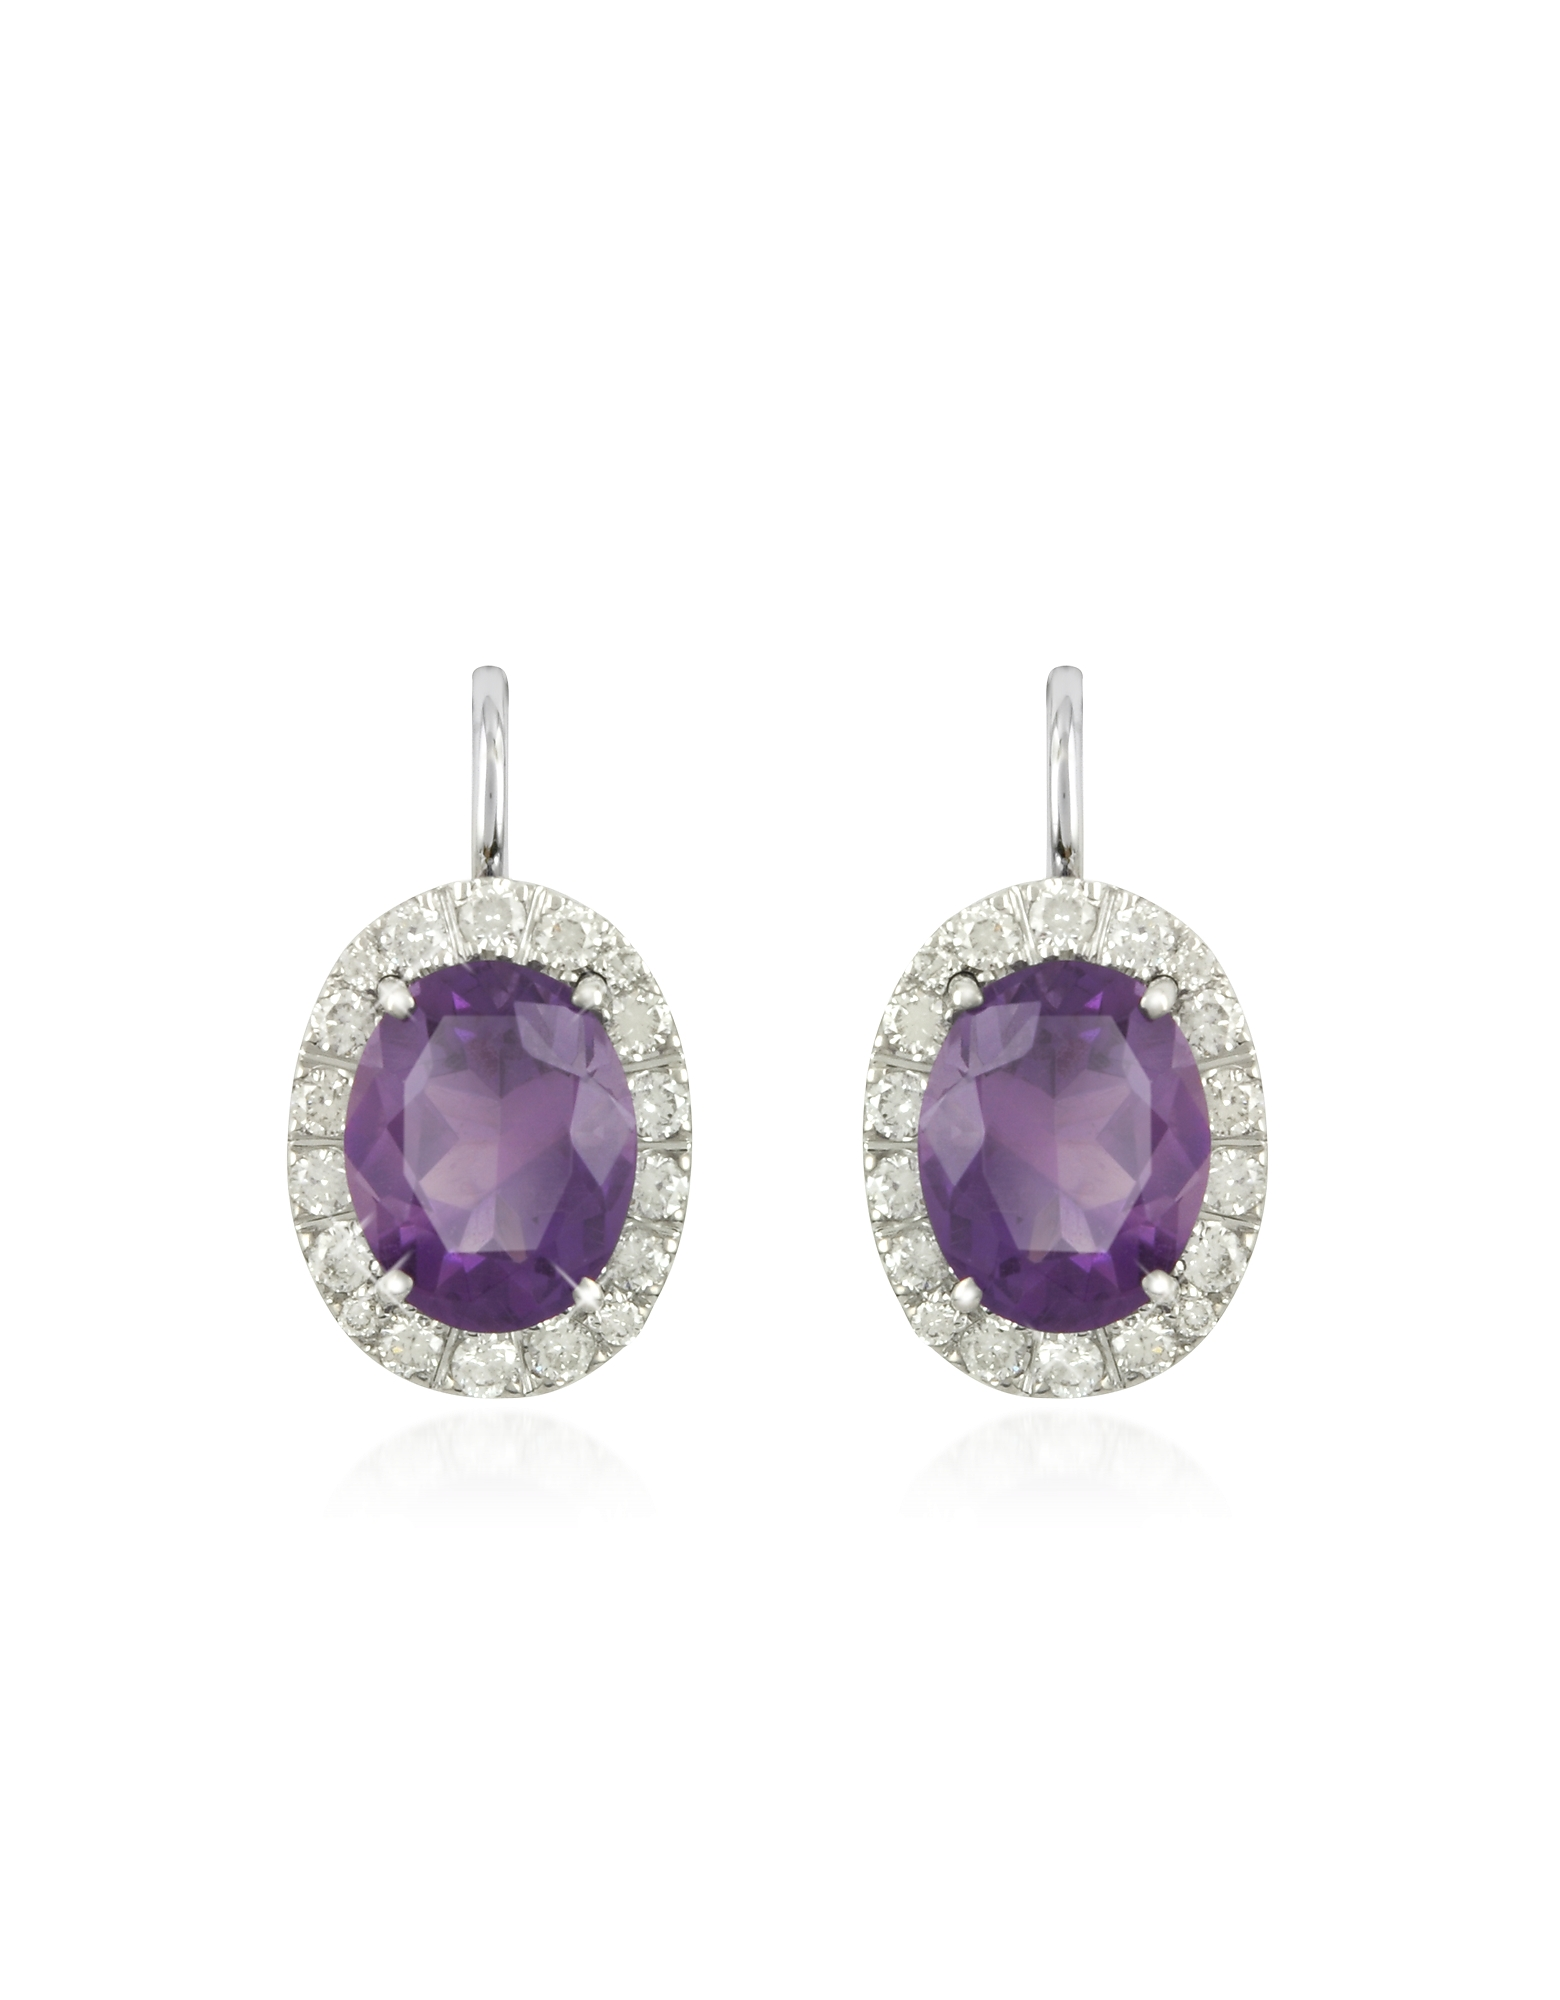 Forzieri Earrings, 0.51 ct Diamond Pave 18K Gold Earrings w/Amethyst